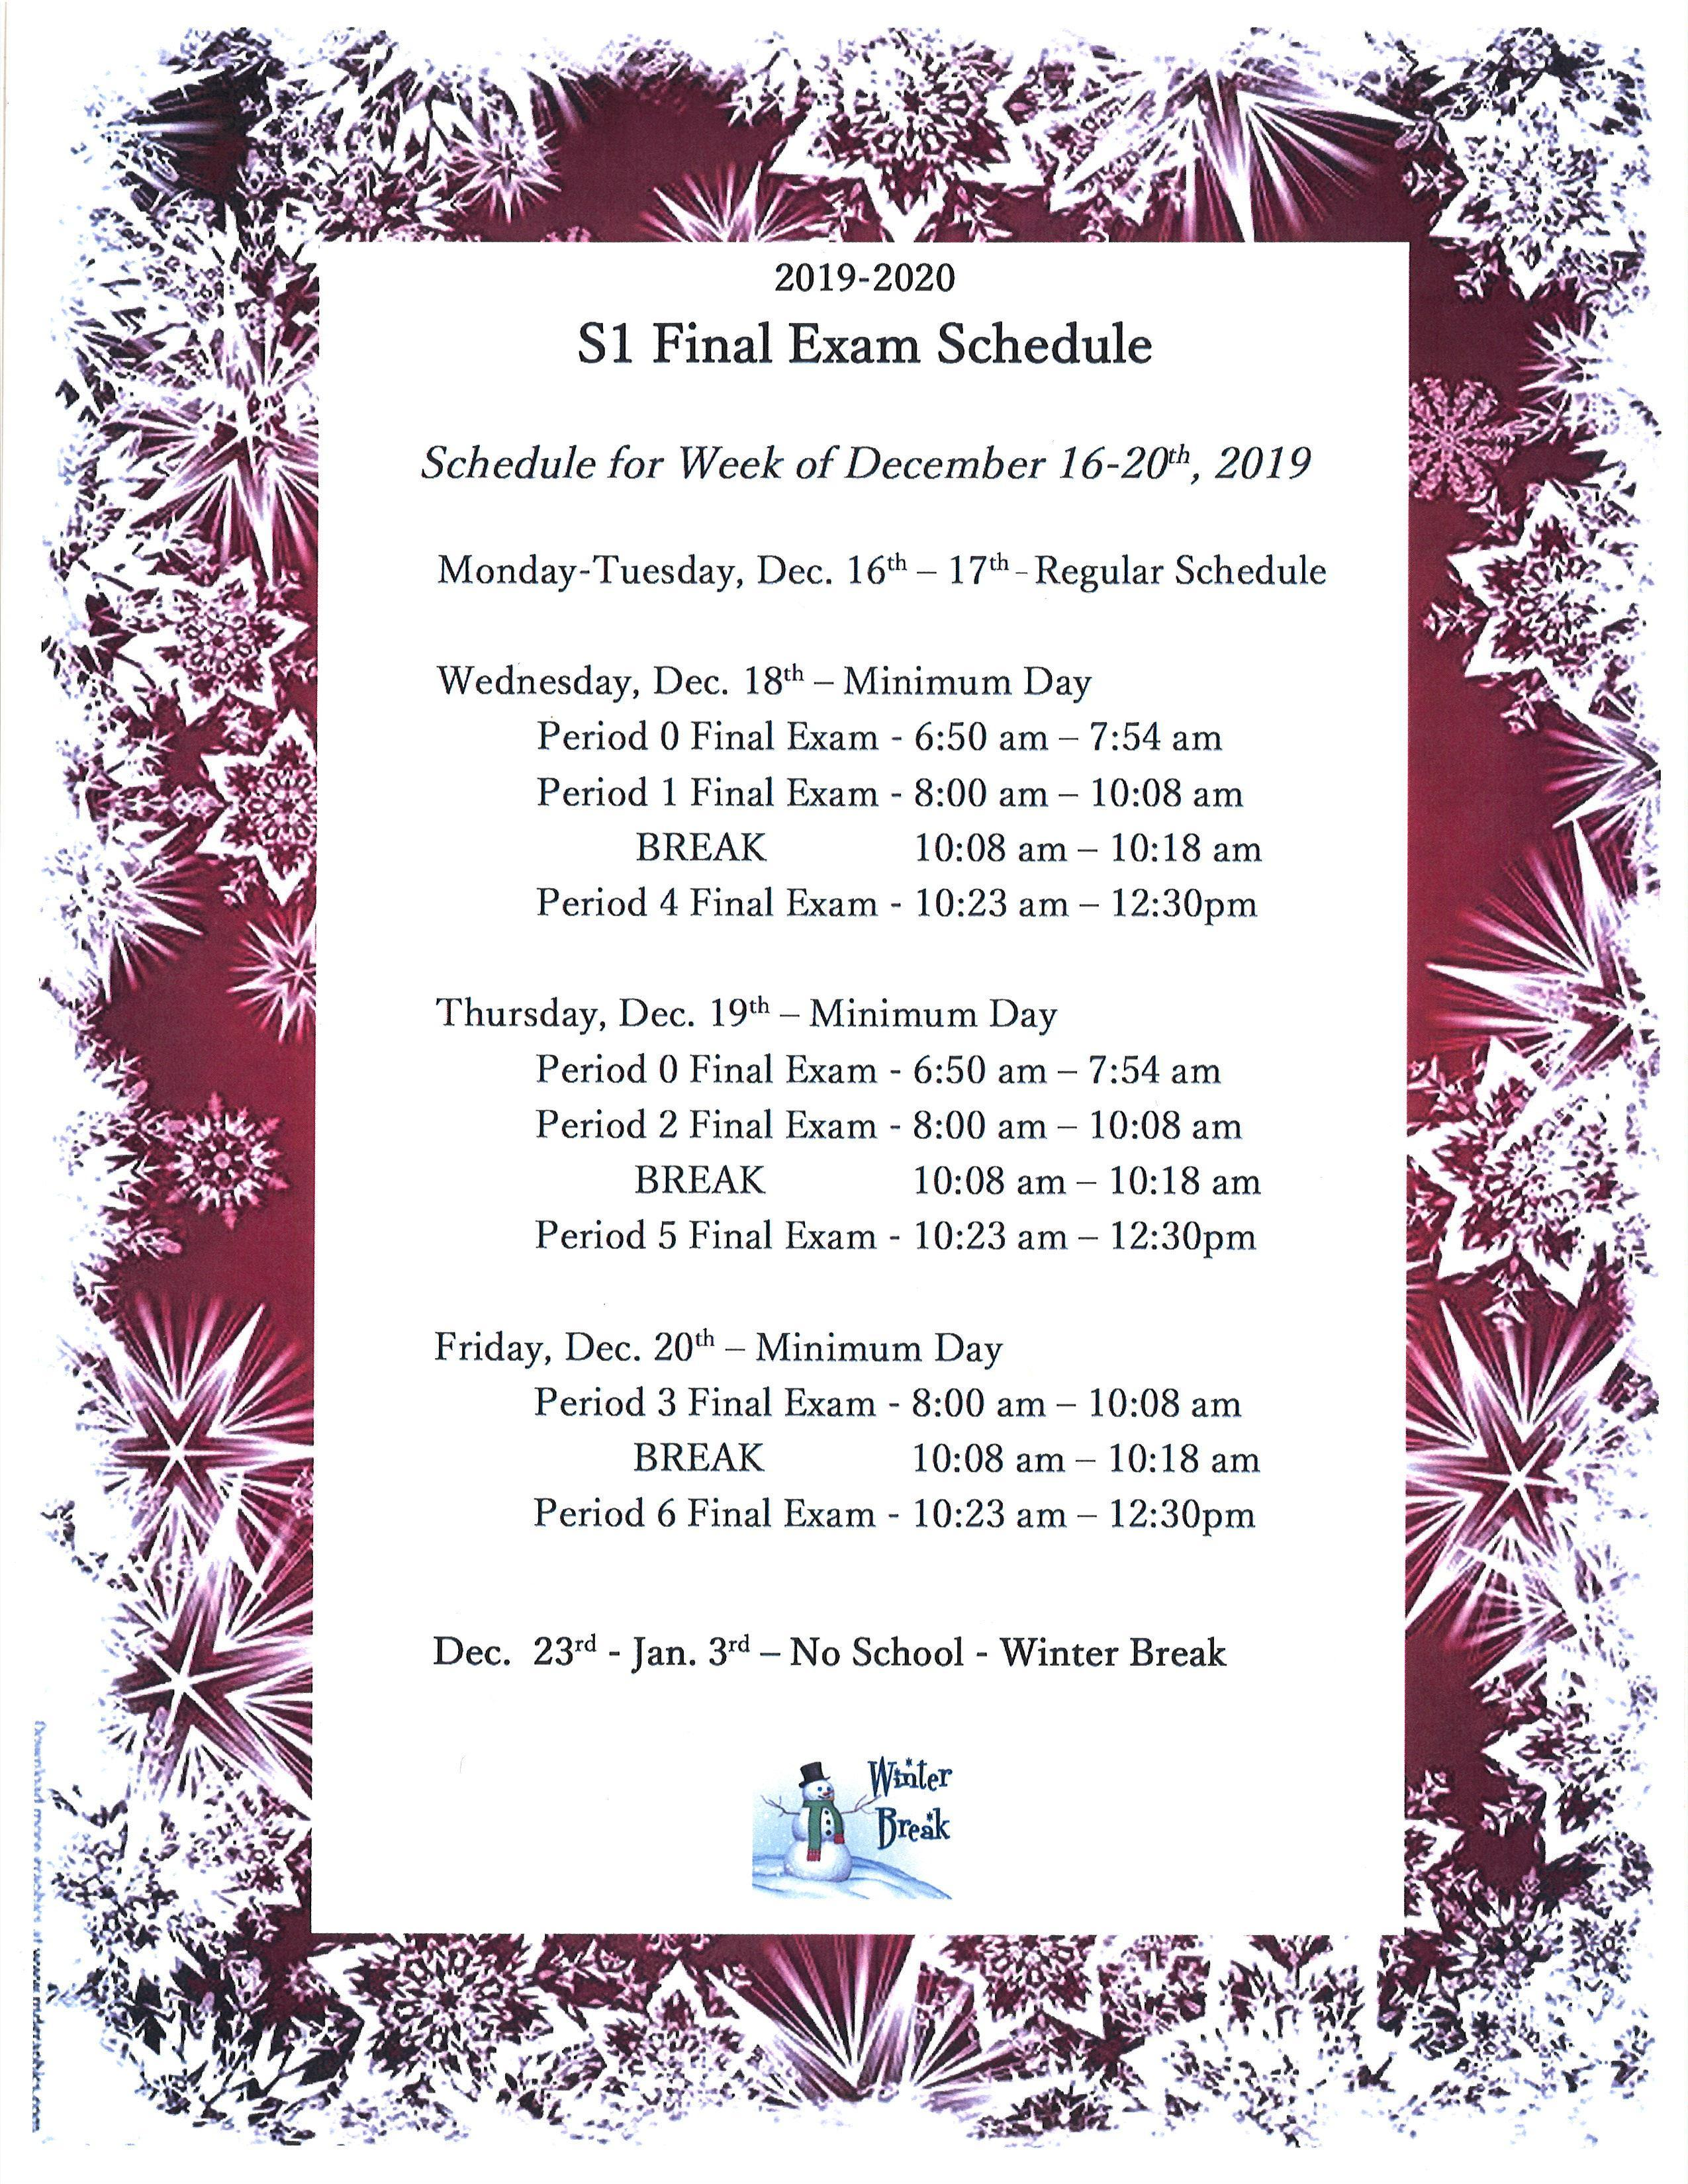 Csula Final Exam Schedule Fall 2020.San Marino High School